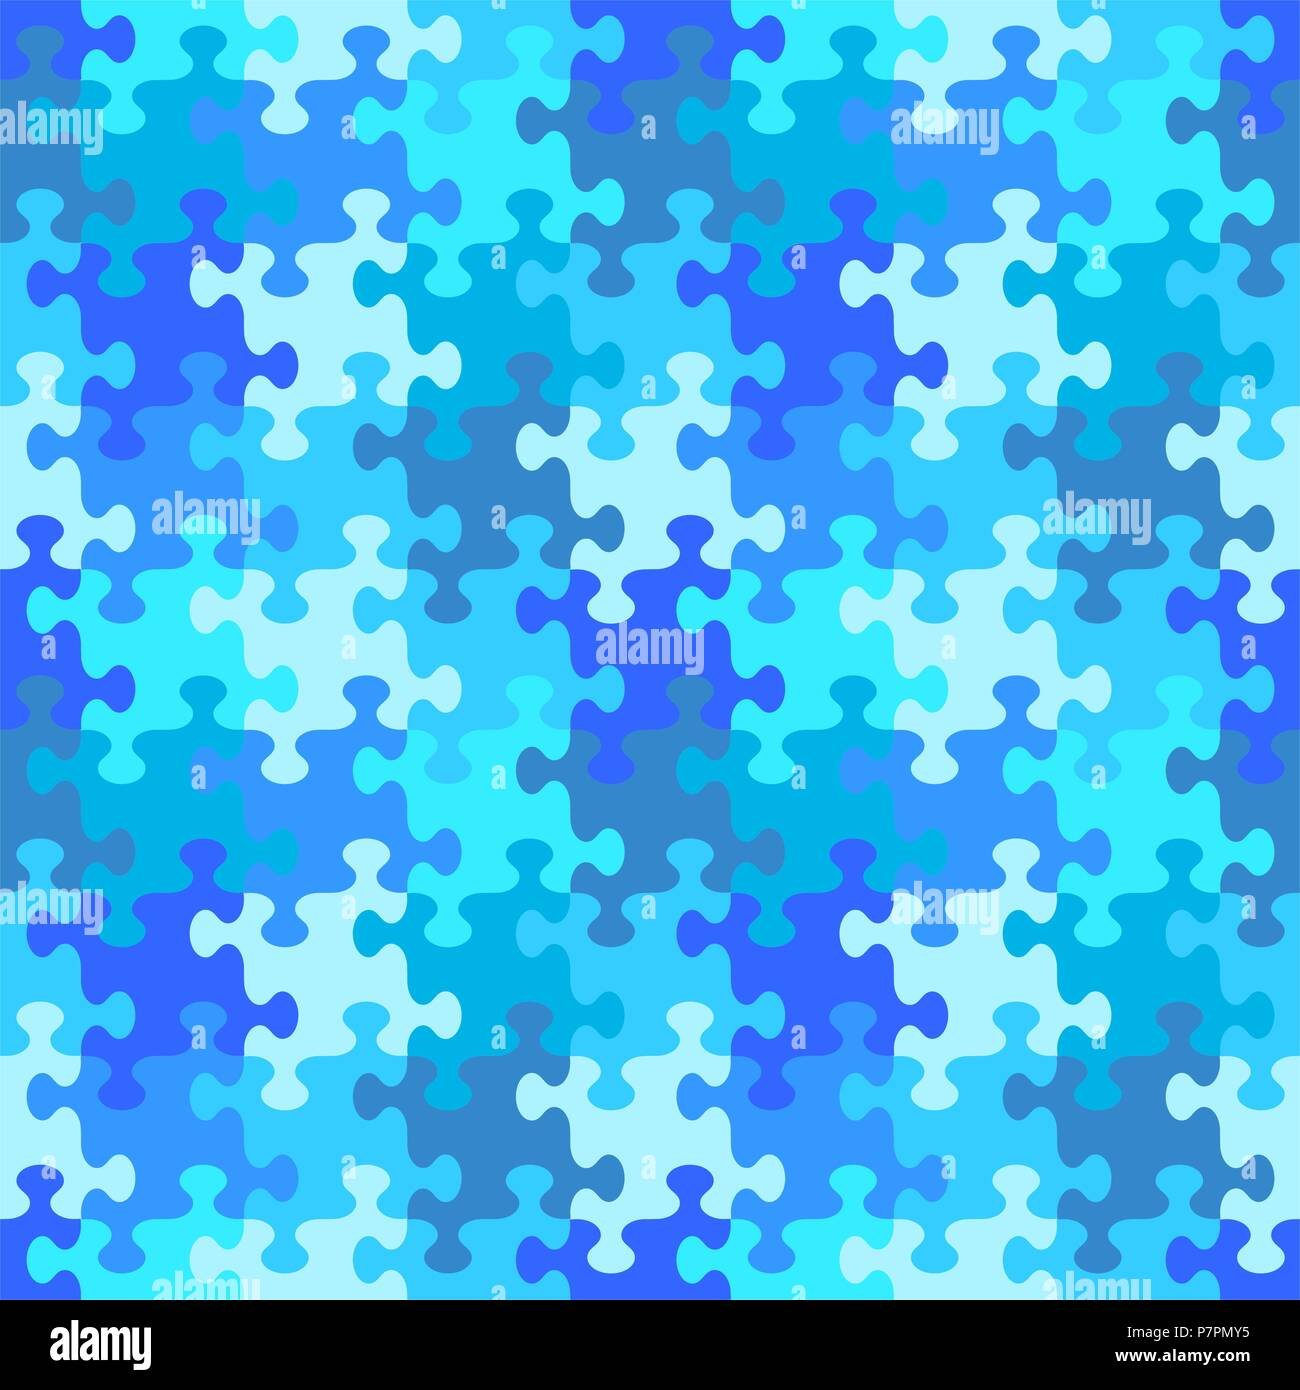 Seamless You See 4 Tiles Jigsaw Puzzle Pattern Background